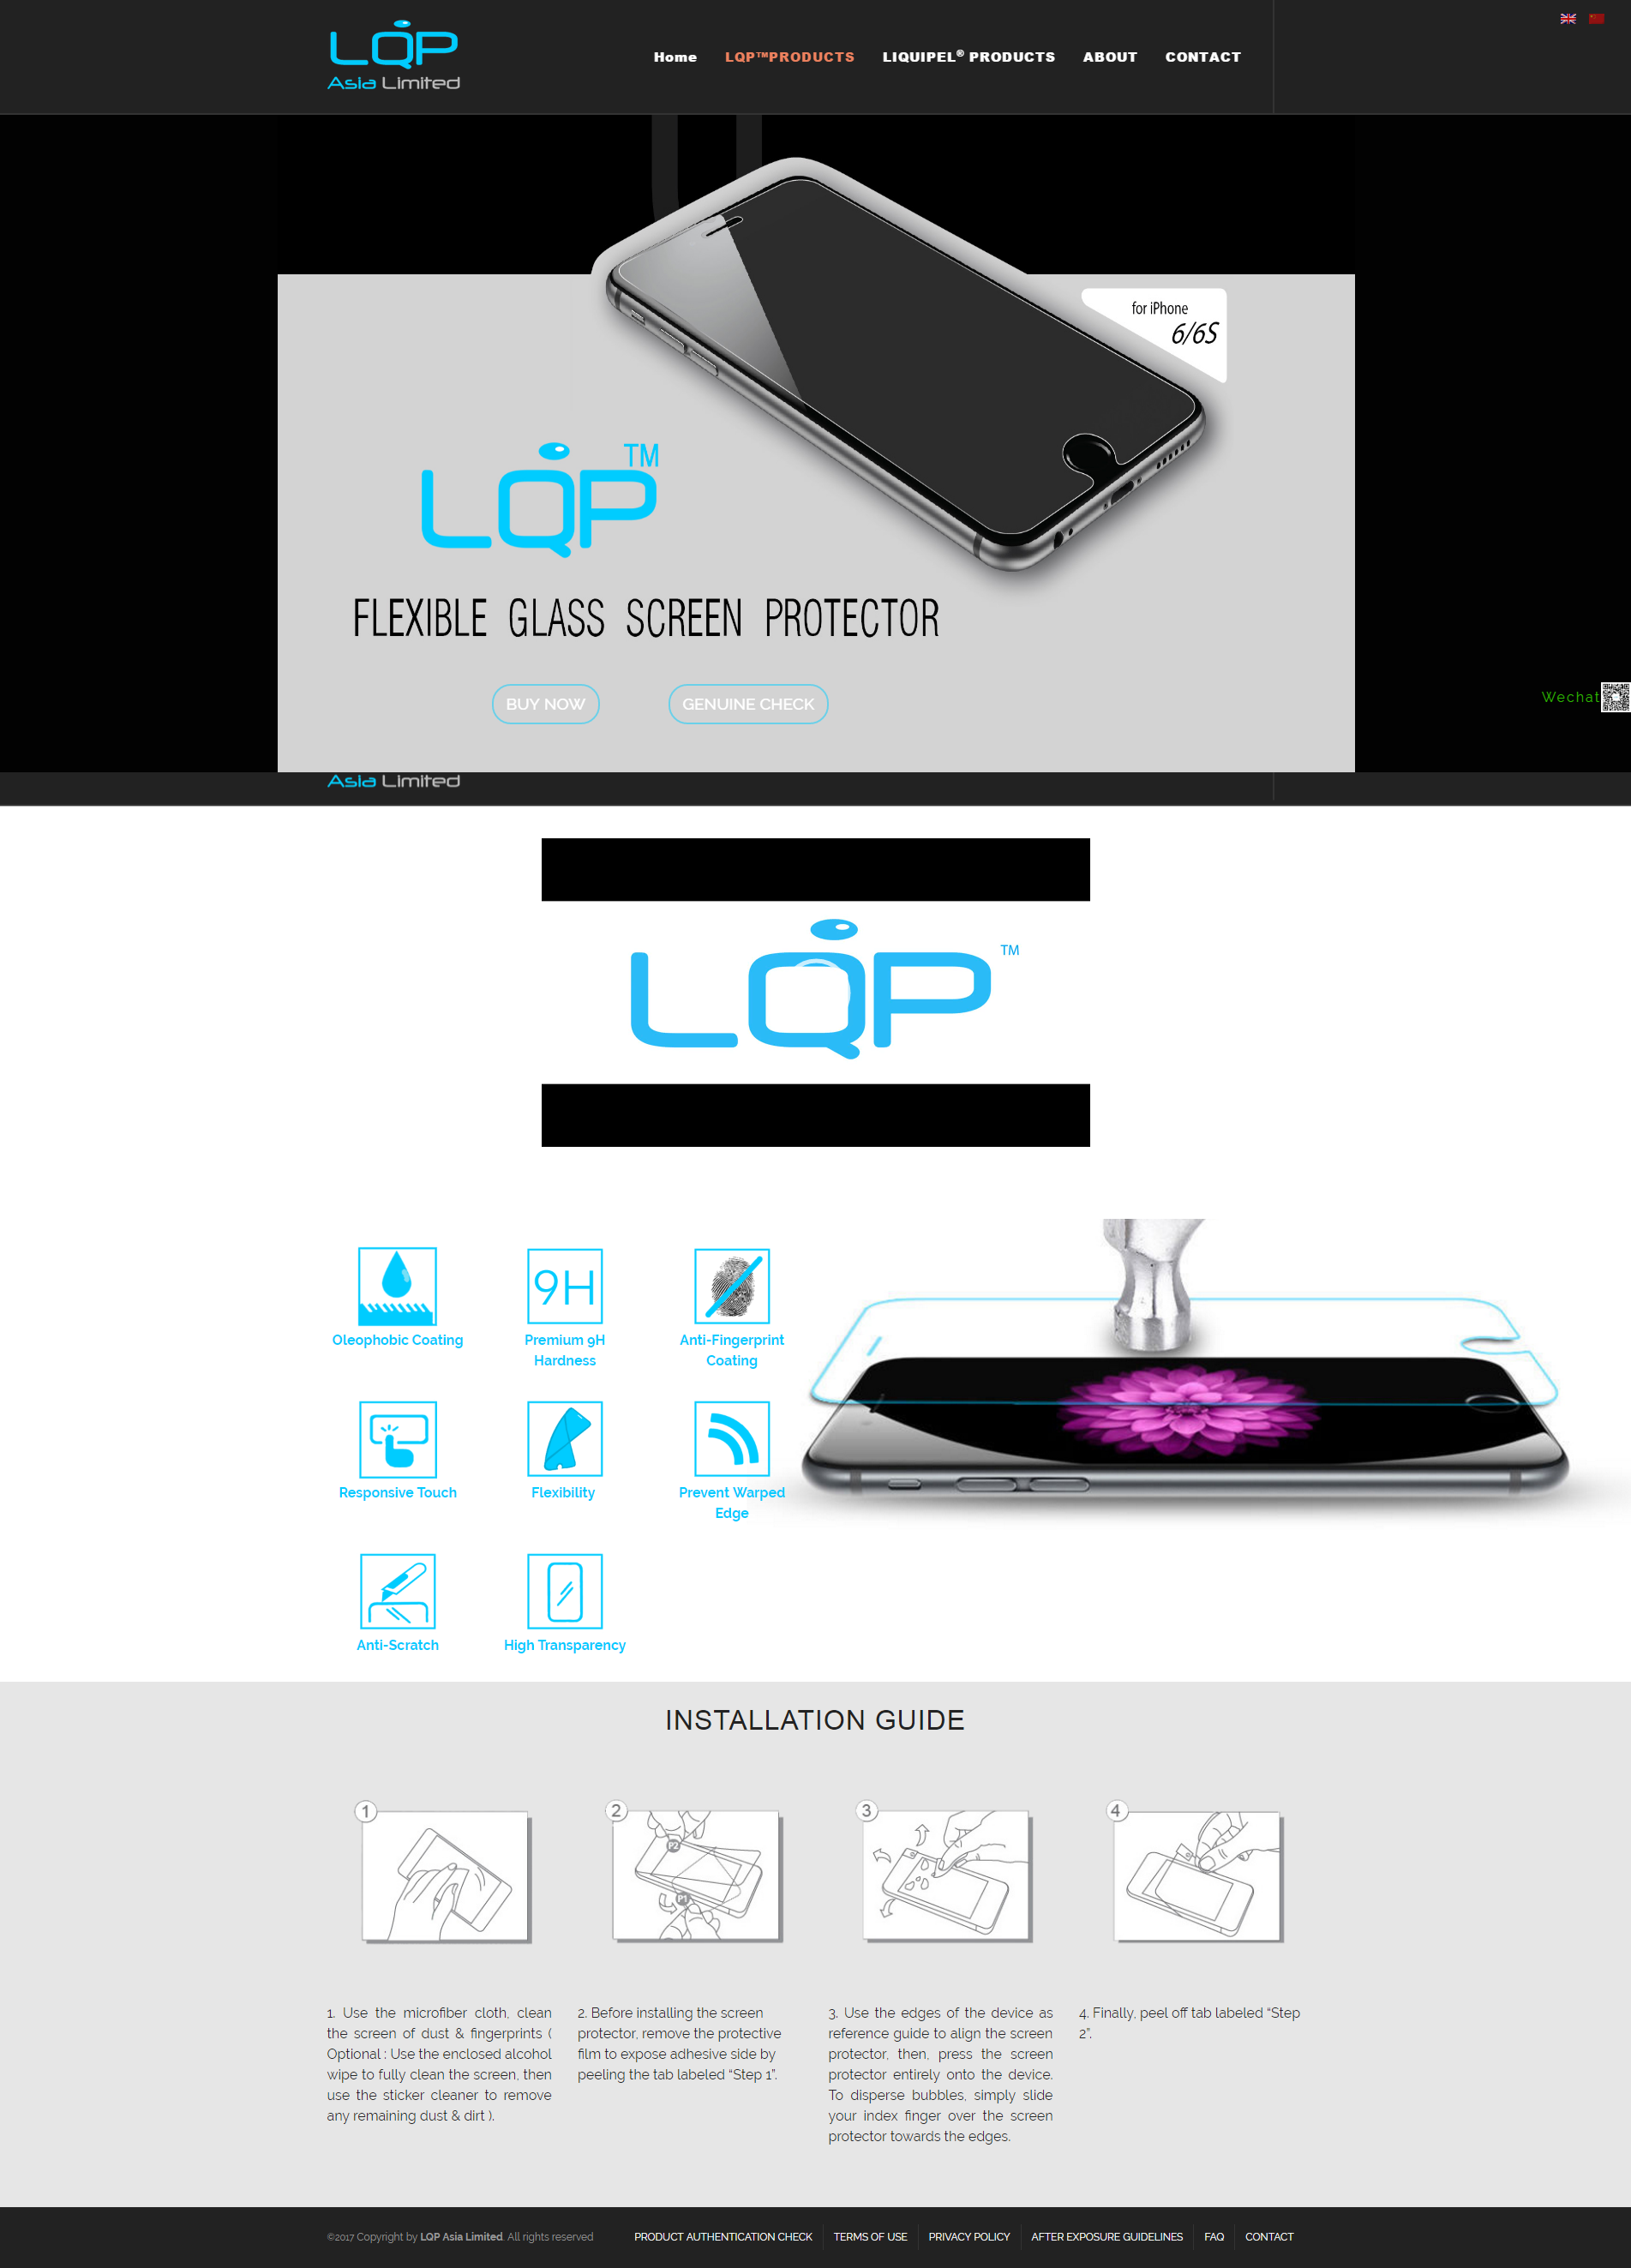 LQP™ Flexible Glass Screen Protector Film Liquipel